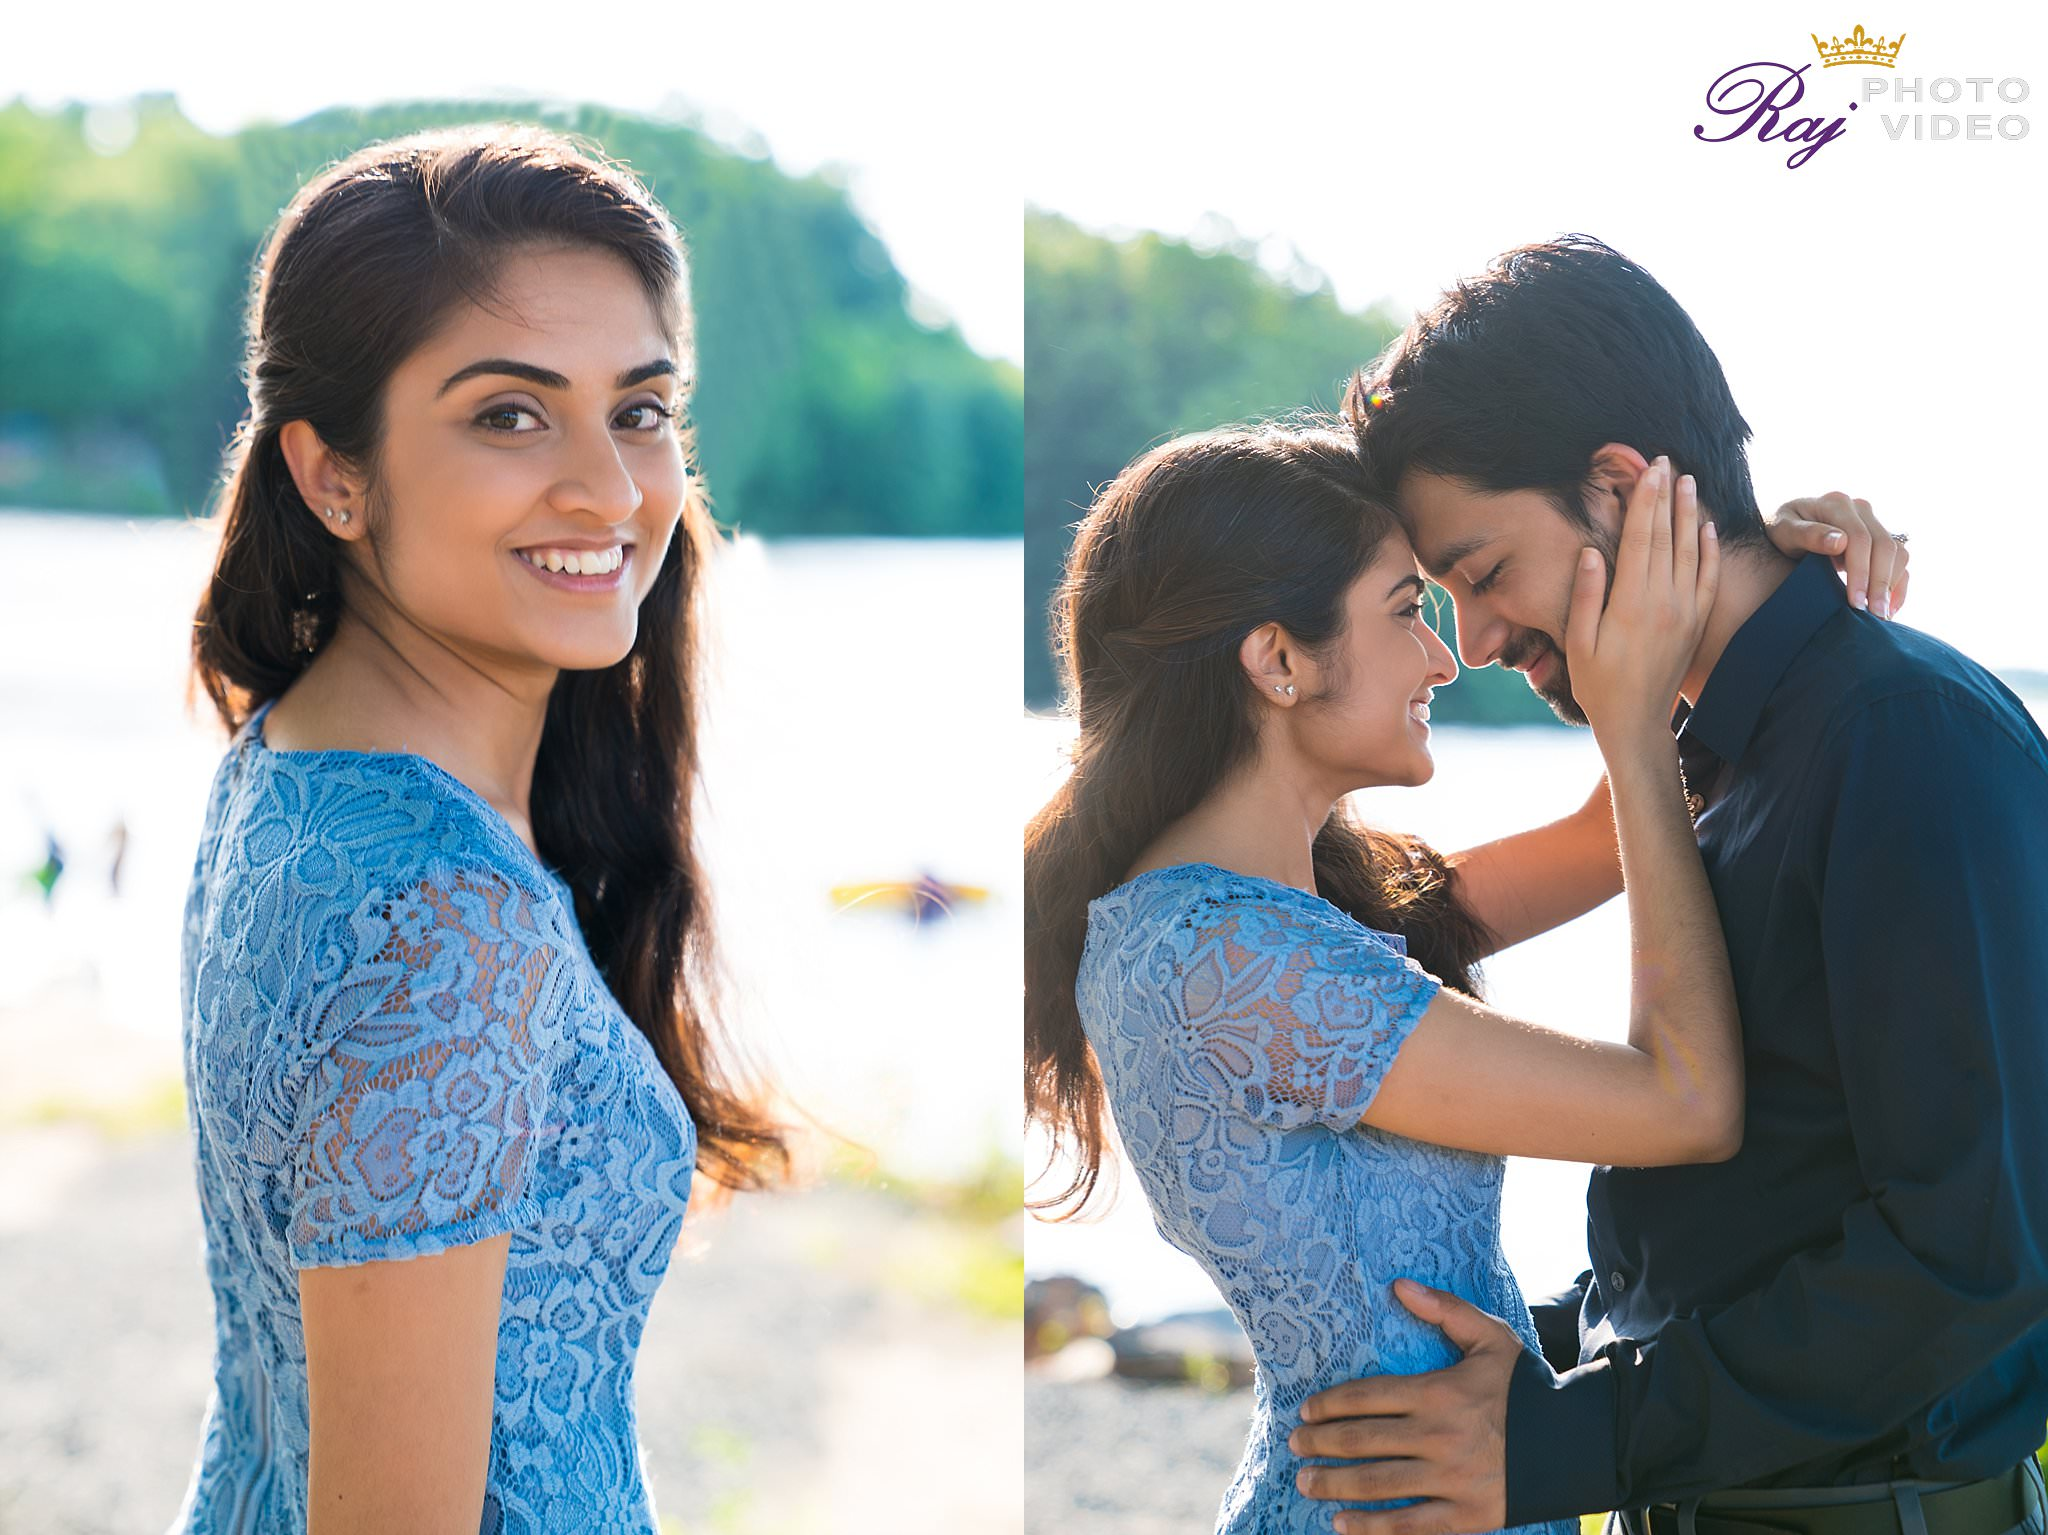 Mercer-County-Park-Engagement-Shoot-Shaili-Rahul-1_Raj_Photo_Video.jpg